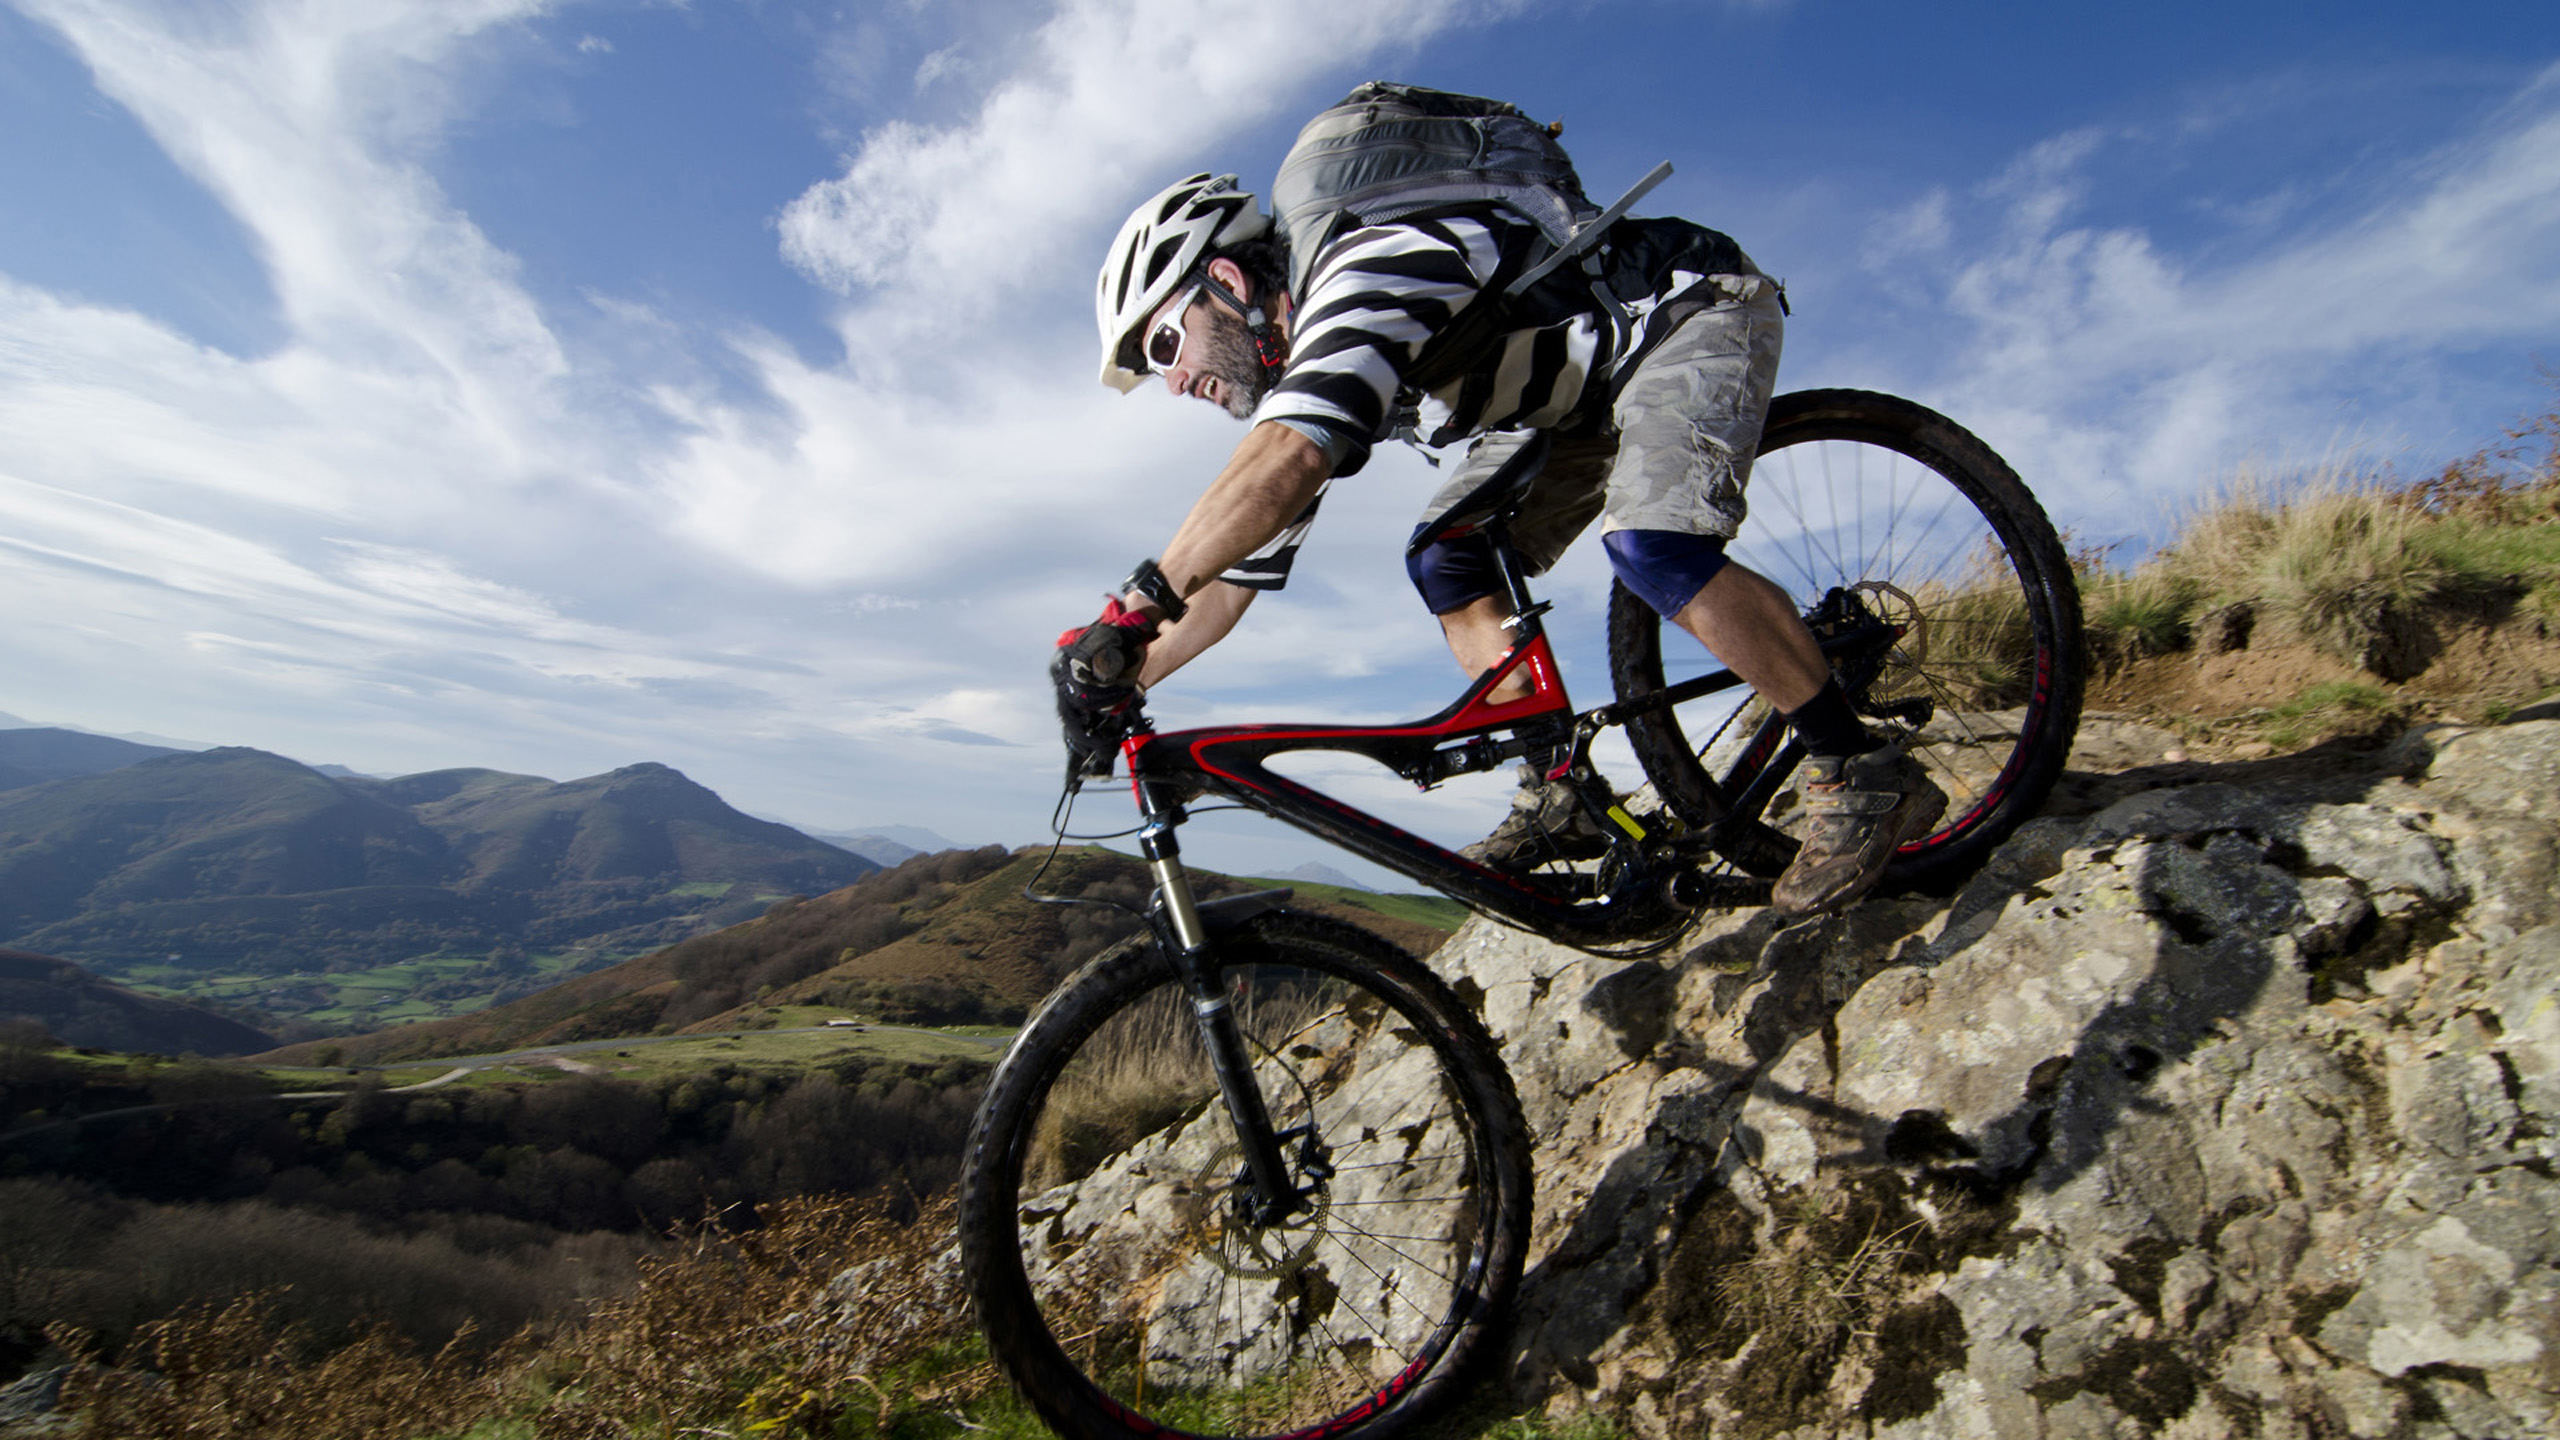 mountain bike hd wallpapers backgrounds wallpaper 2560x1440, Powerpoint templates